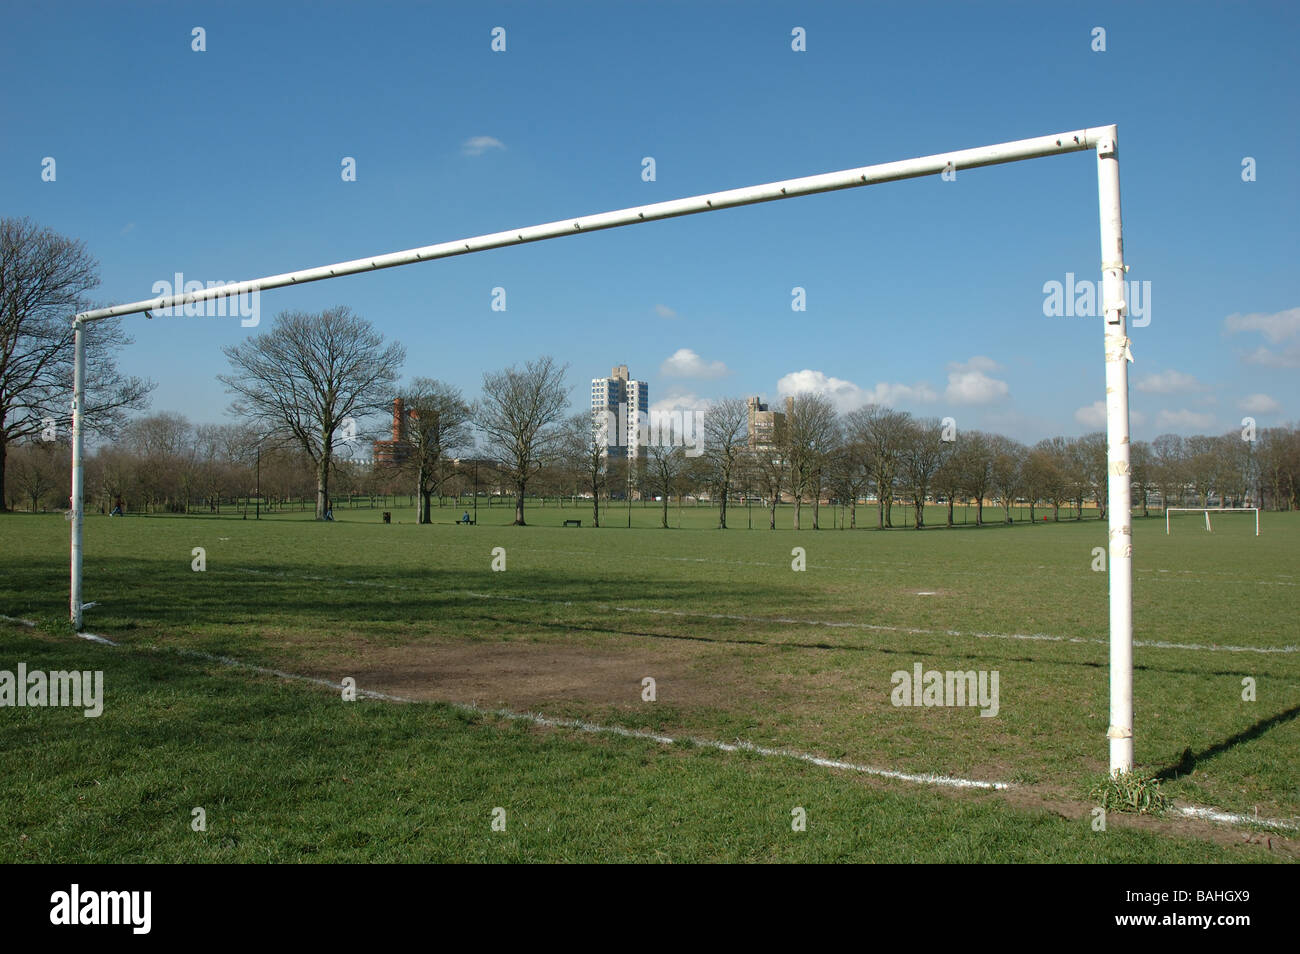 football pitch, Victoria Park, Leicester, England, UK - Stock Image